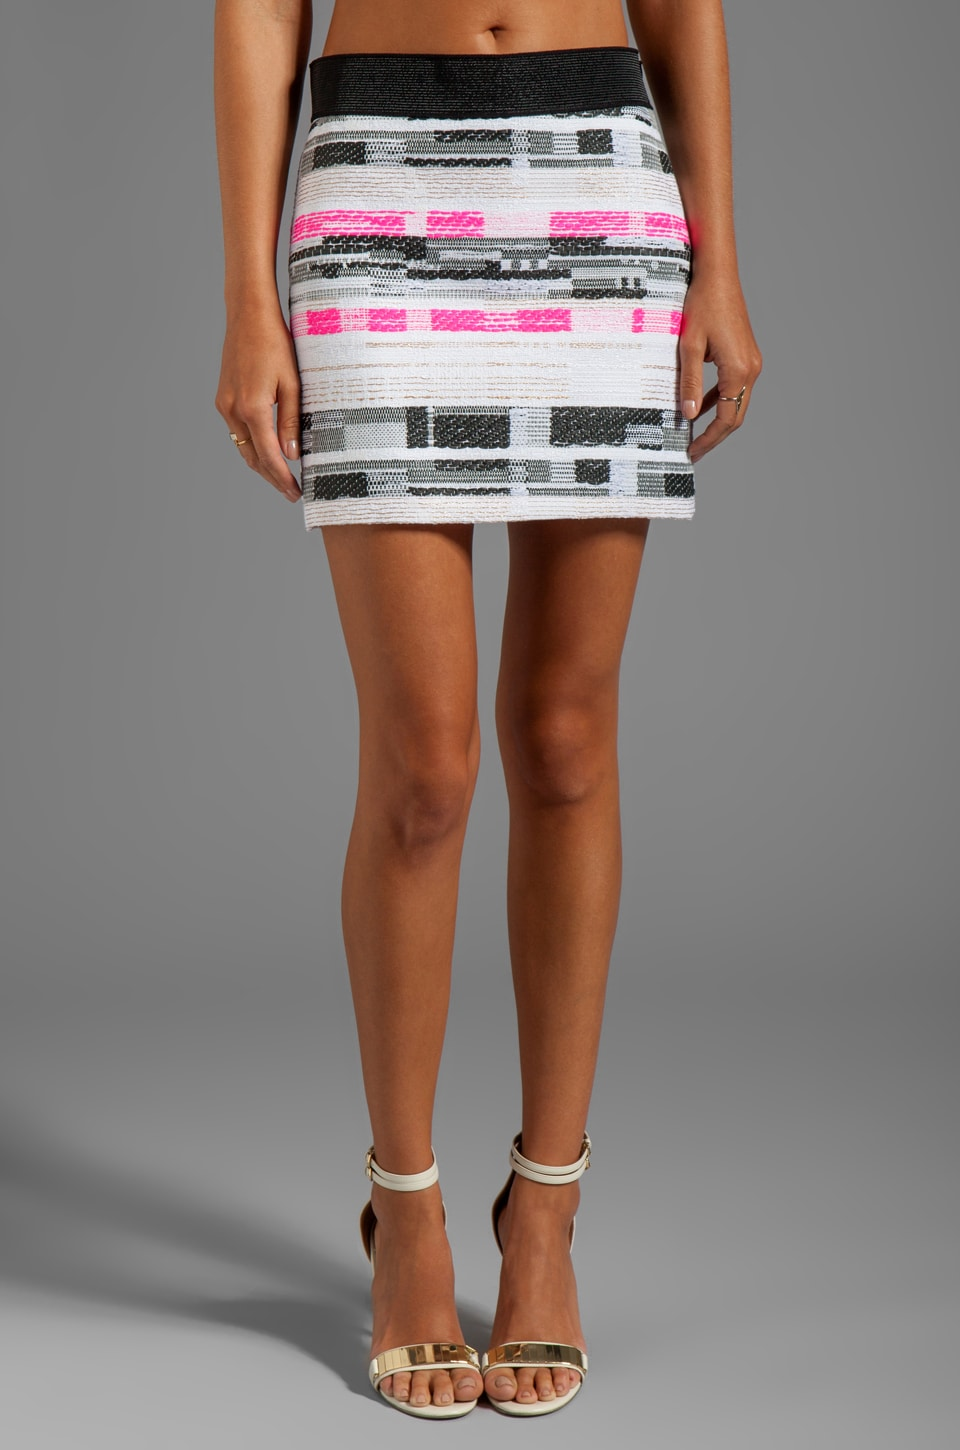 MILLY Malhia Couture Tweed Ribbon Mini Skirt in Shocking Pink